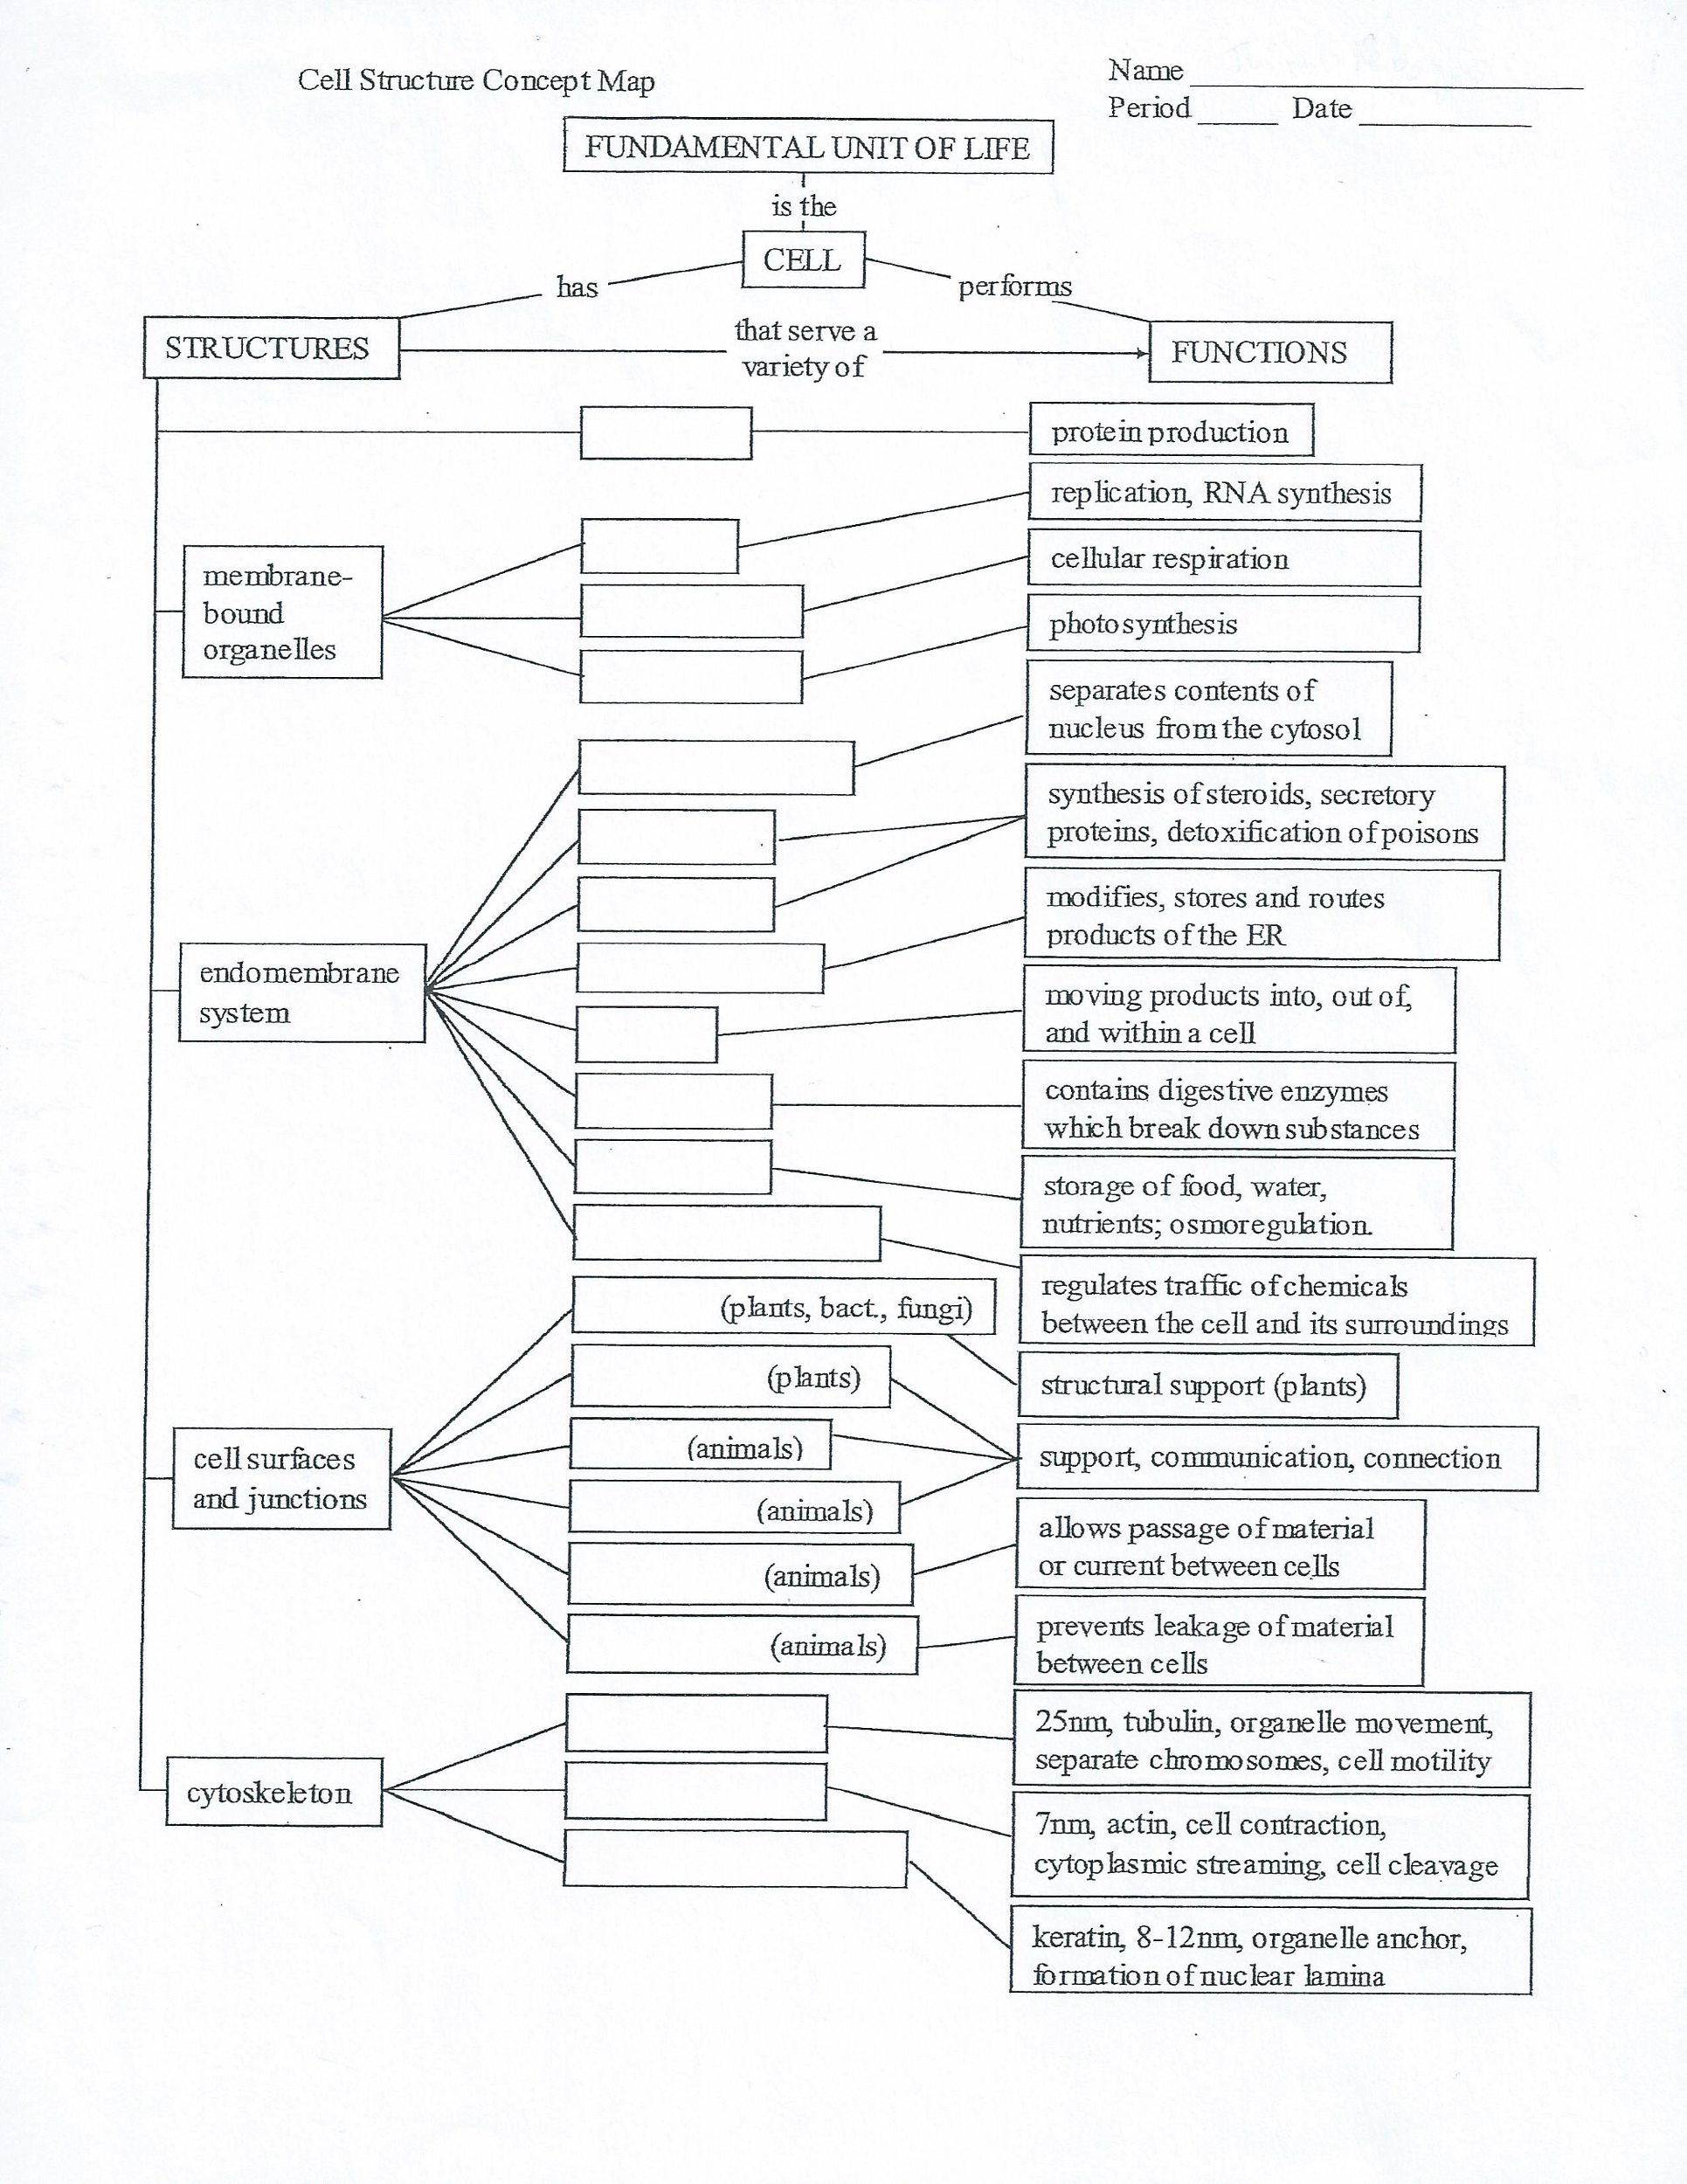 Cell Structure Concept Map Solved: Name Period Cell Structure Concept Map Date FUNDAM